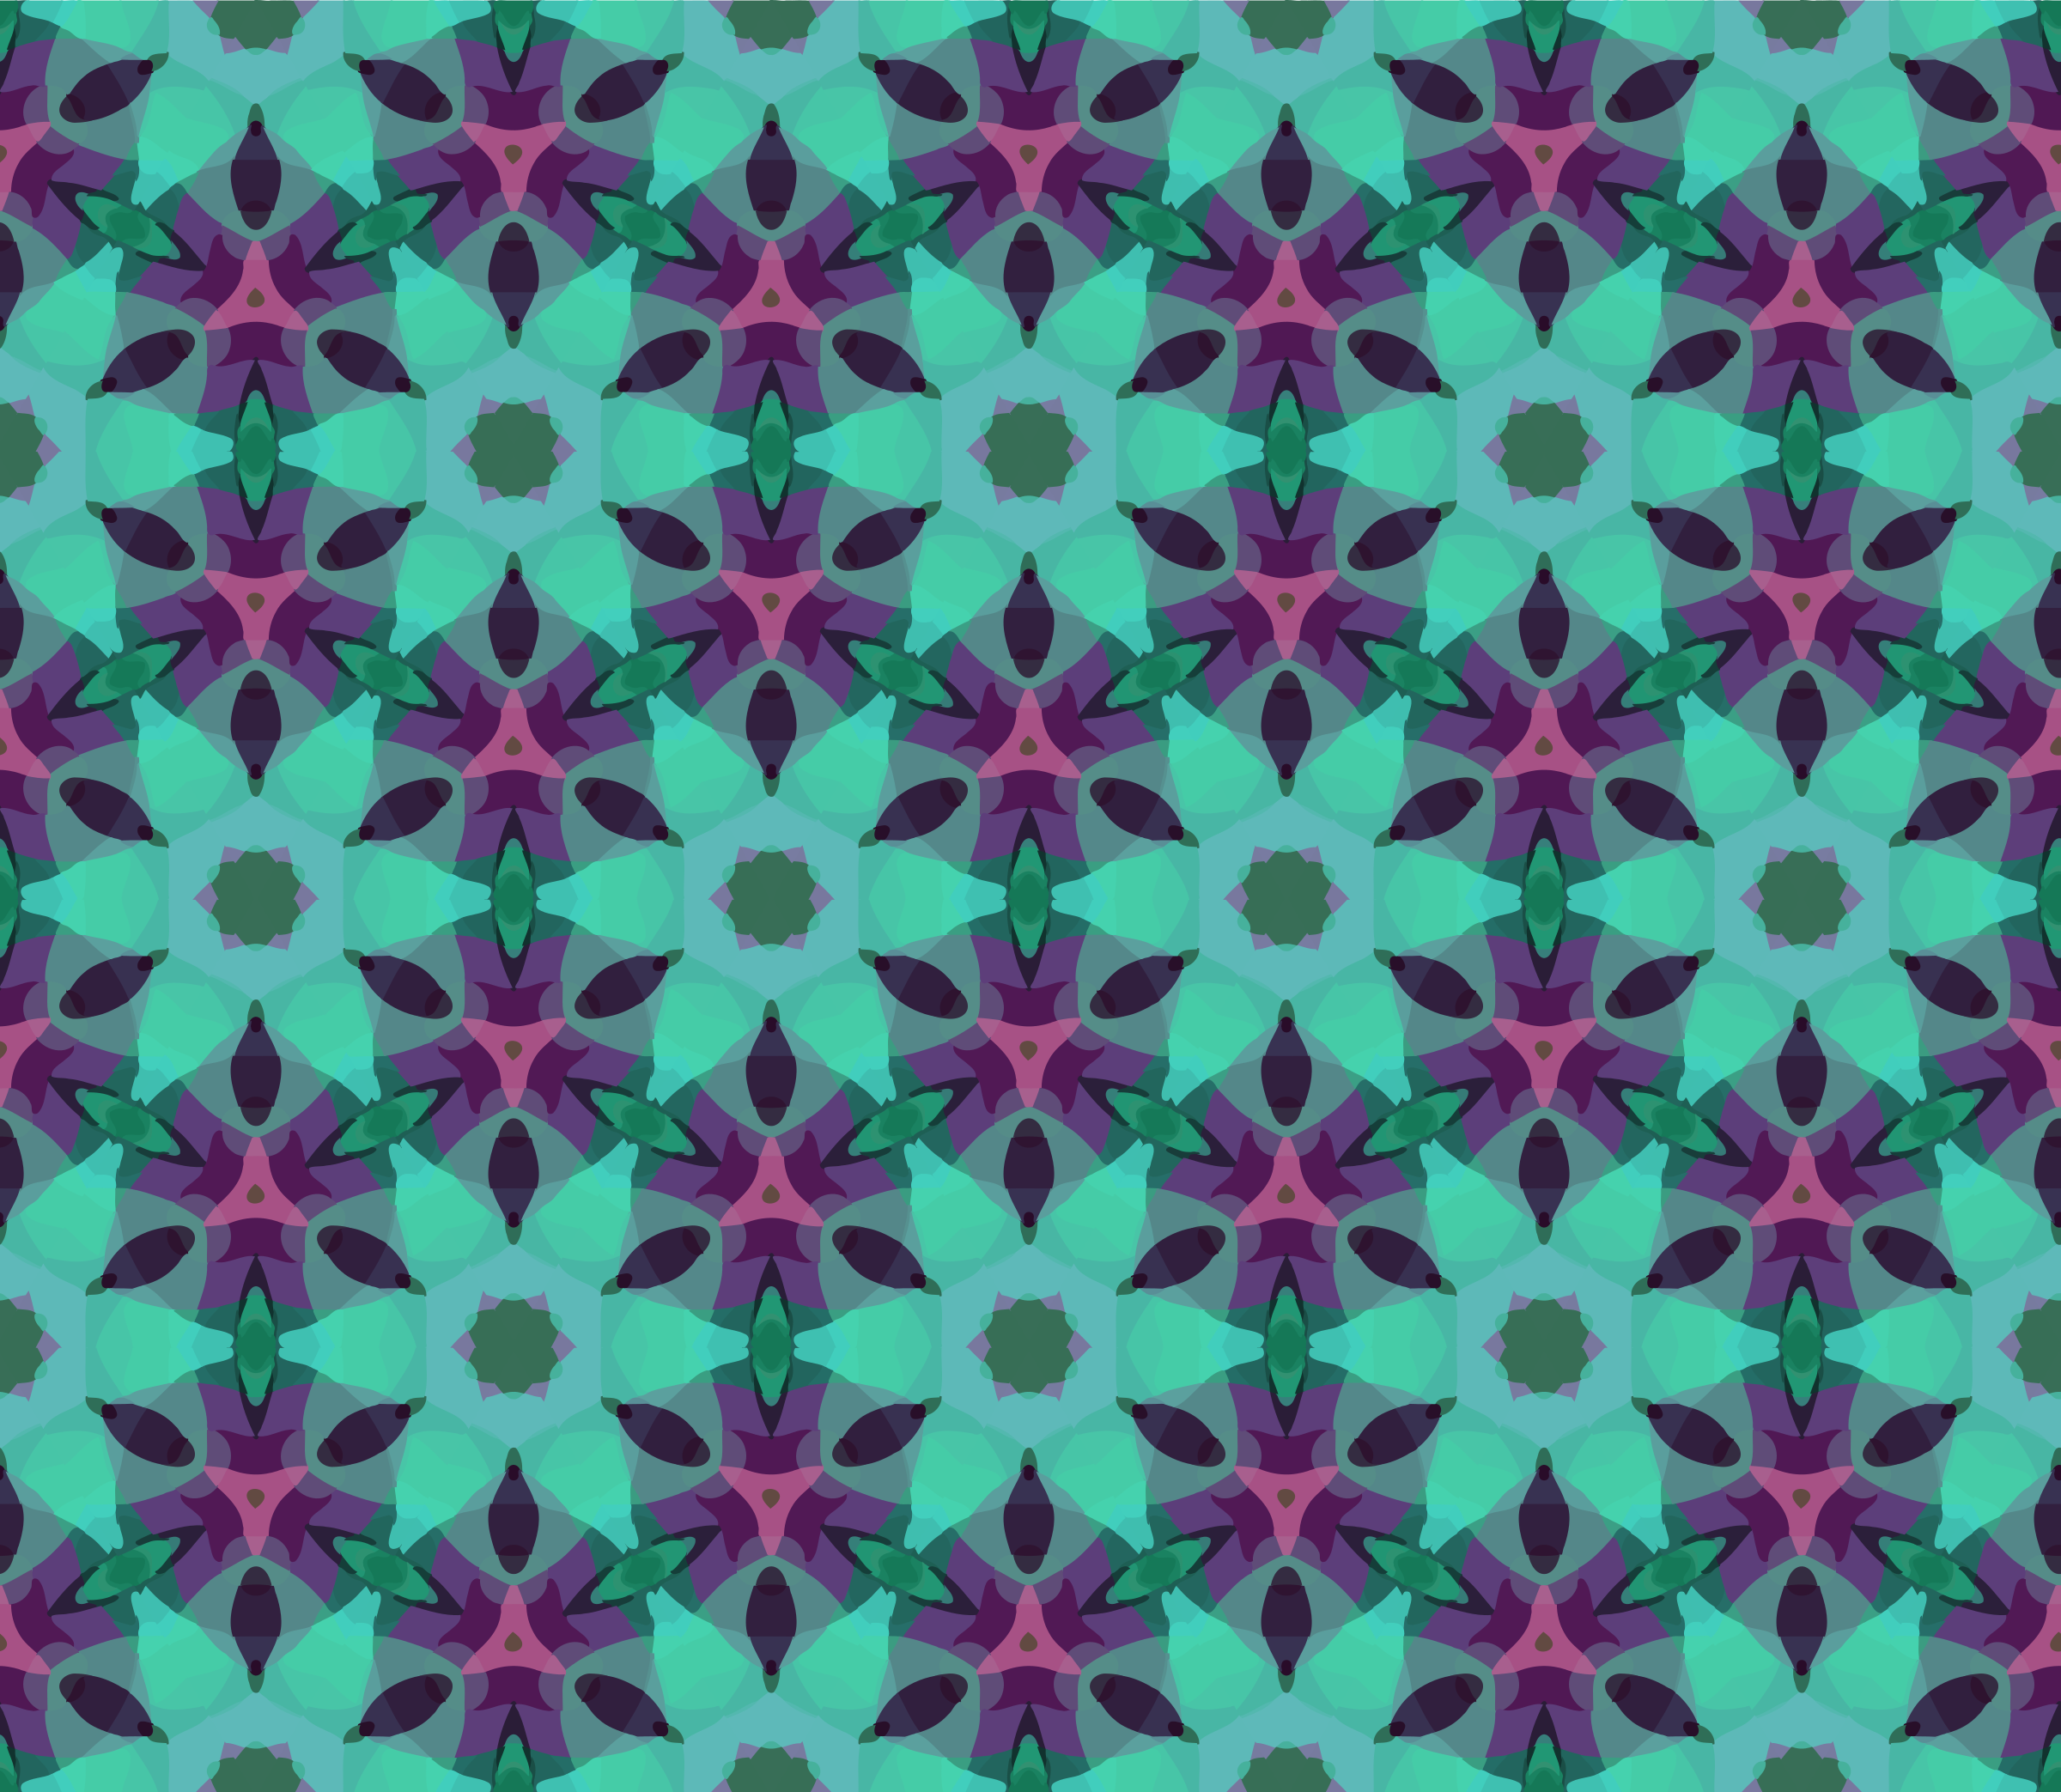 Background pattern 148 (colour 5) by Firkin